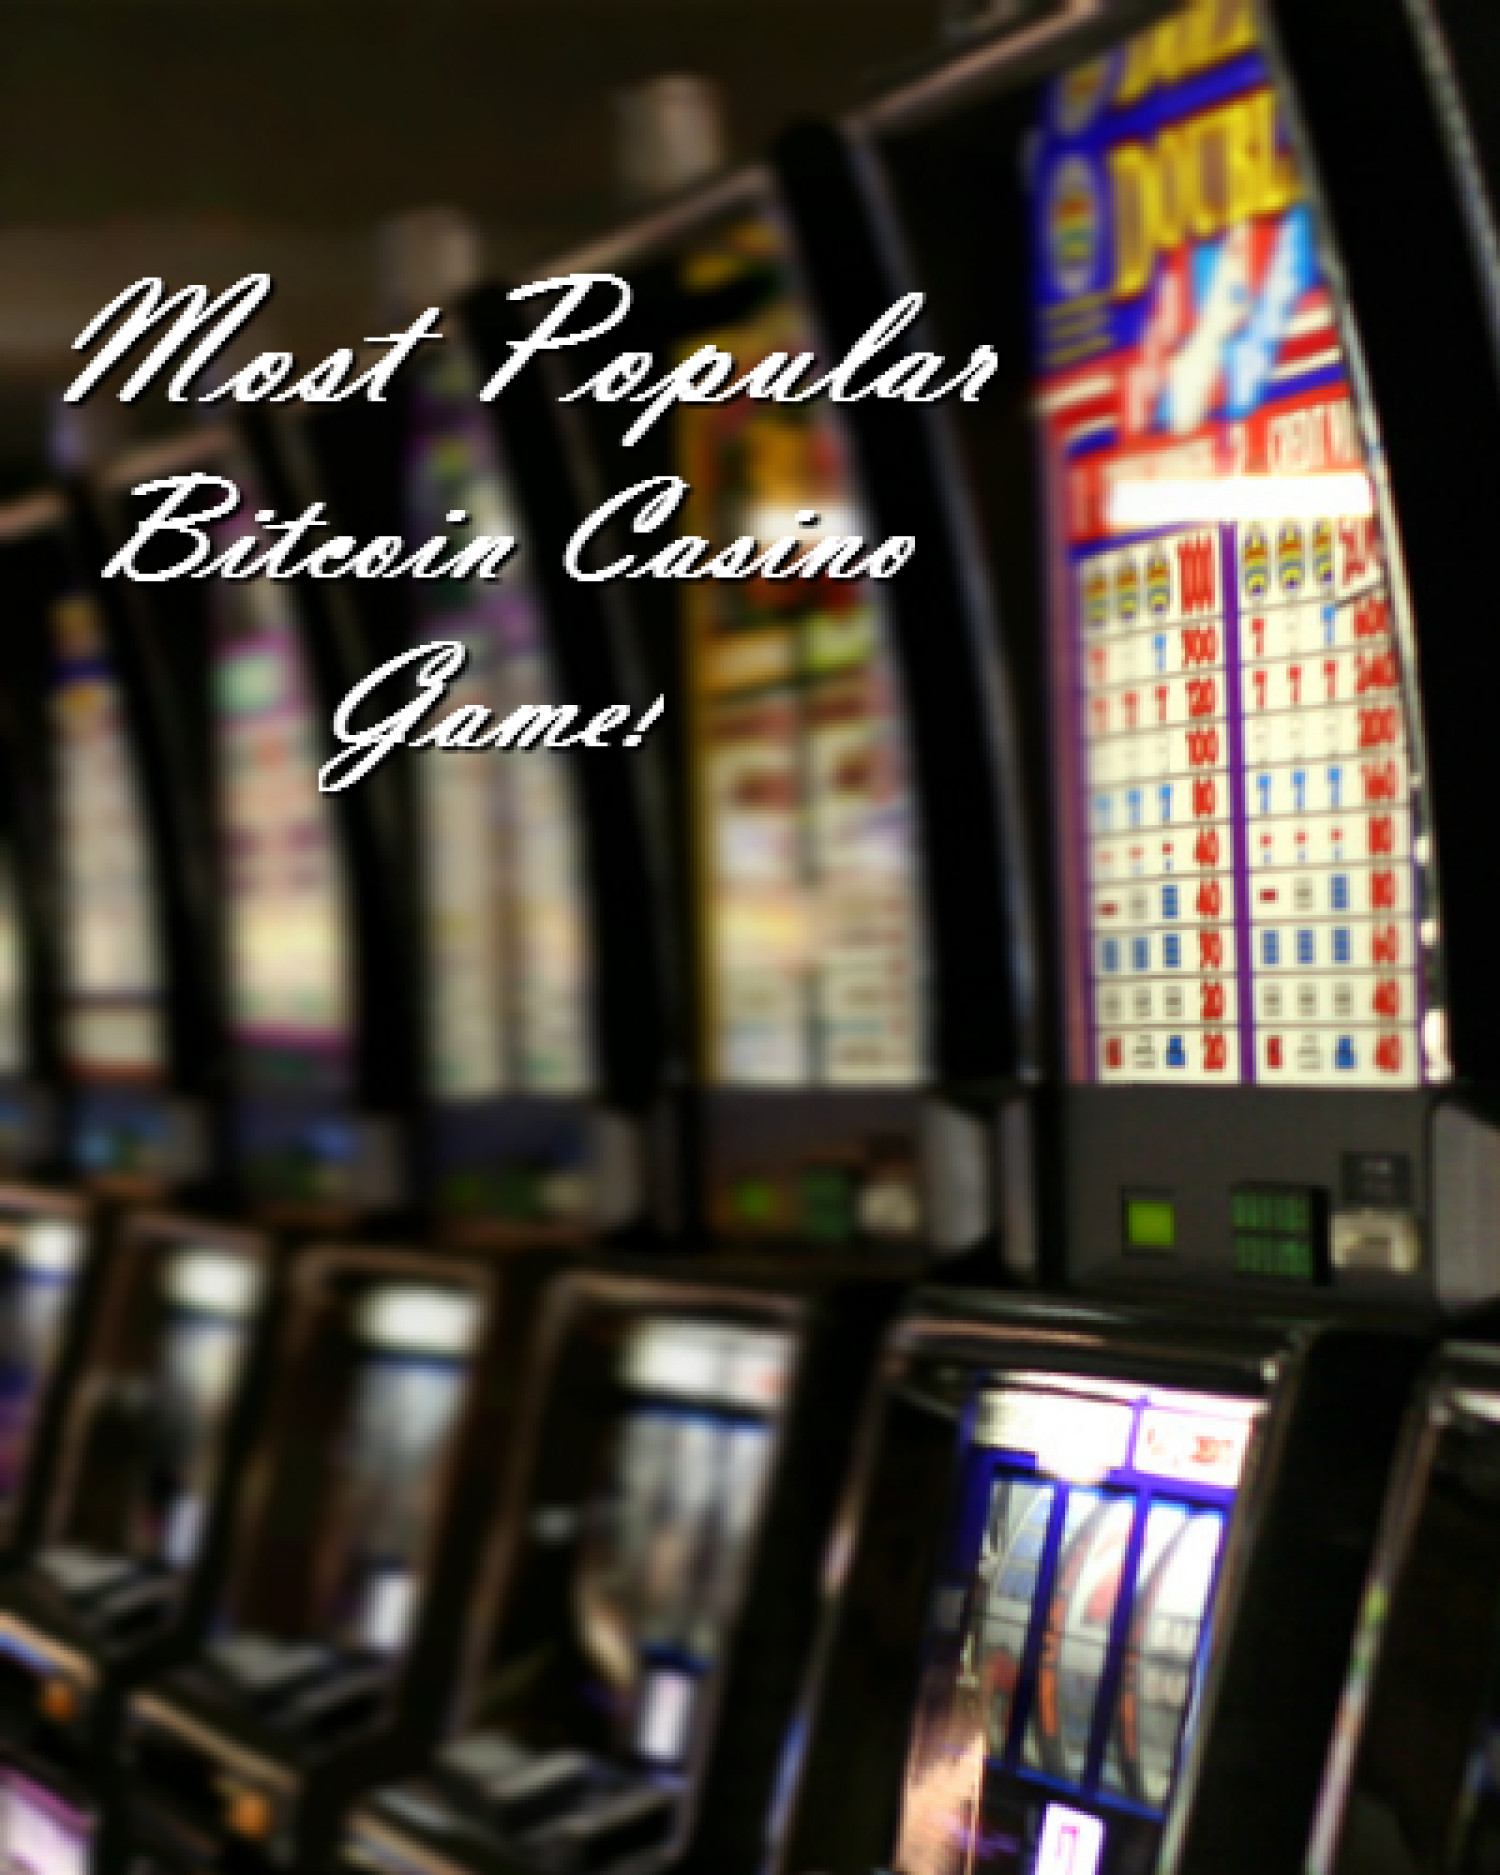 Most Popular Bitcoin Casino Game Infographic